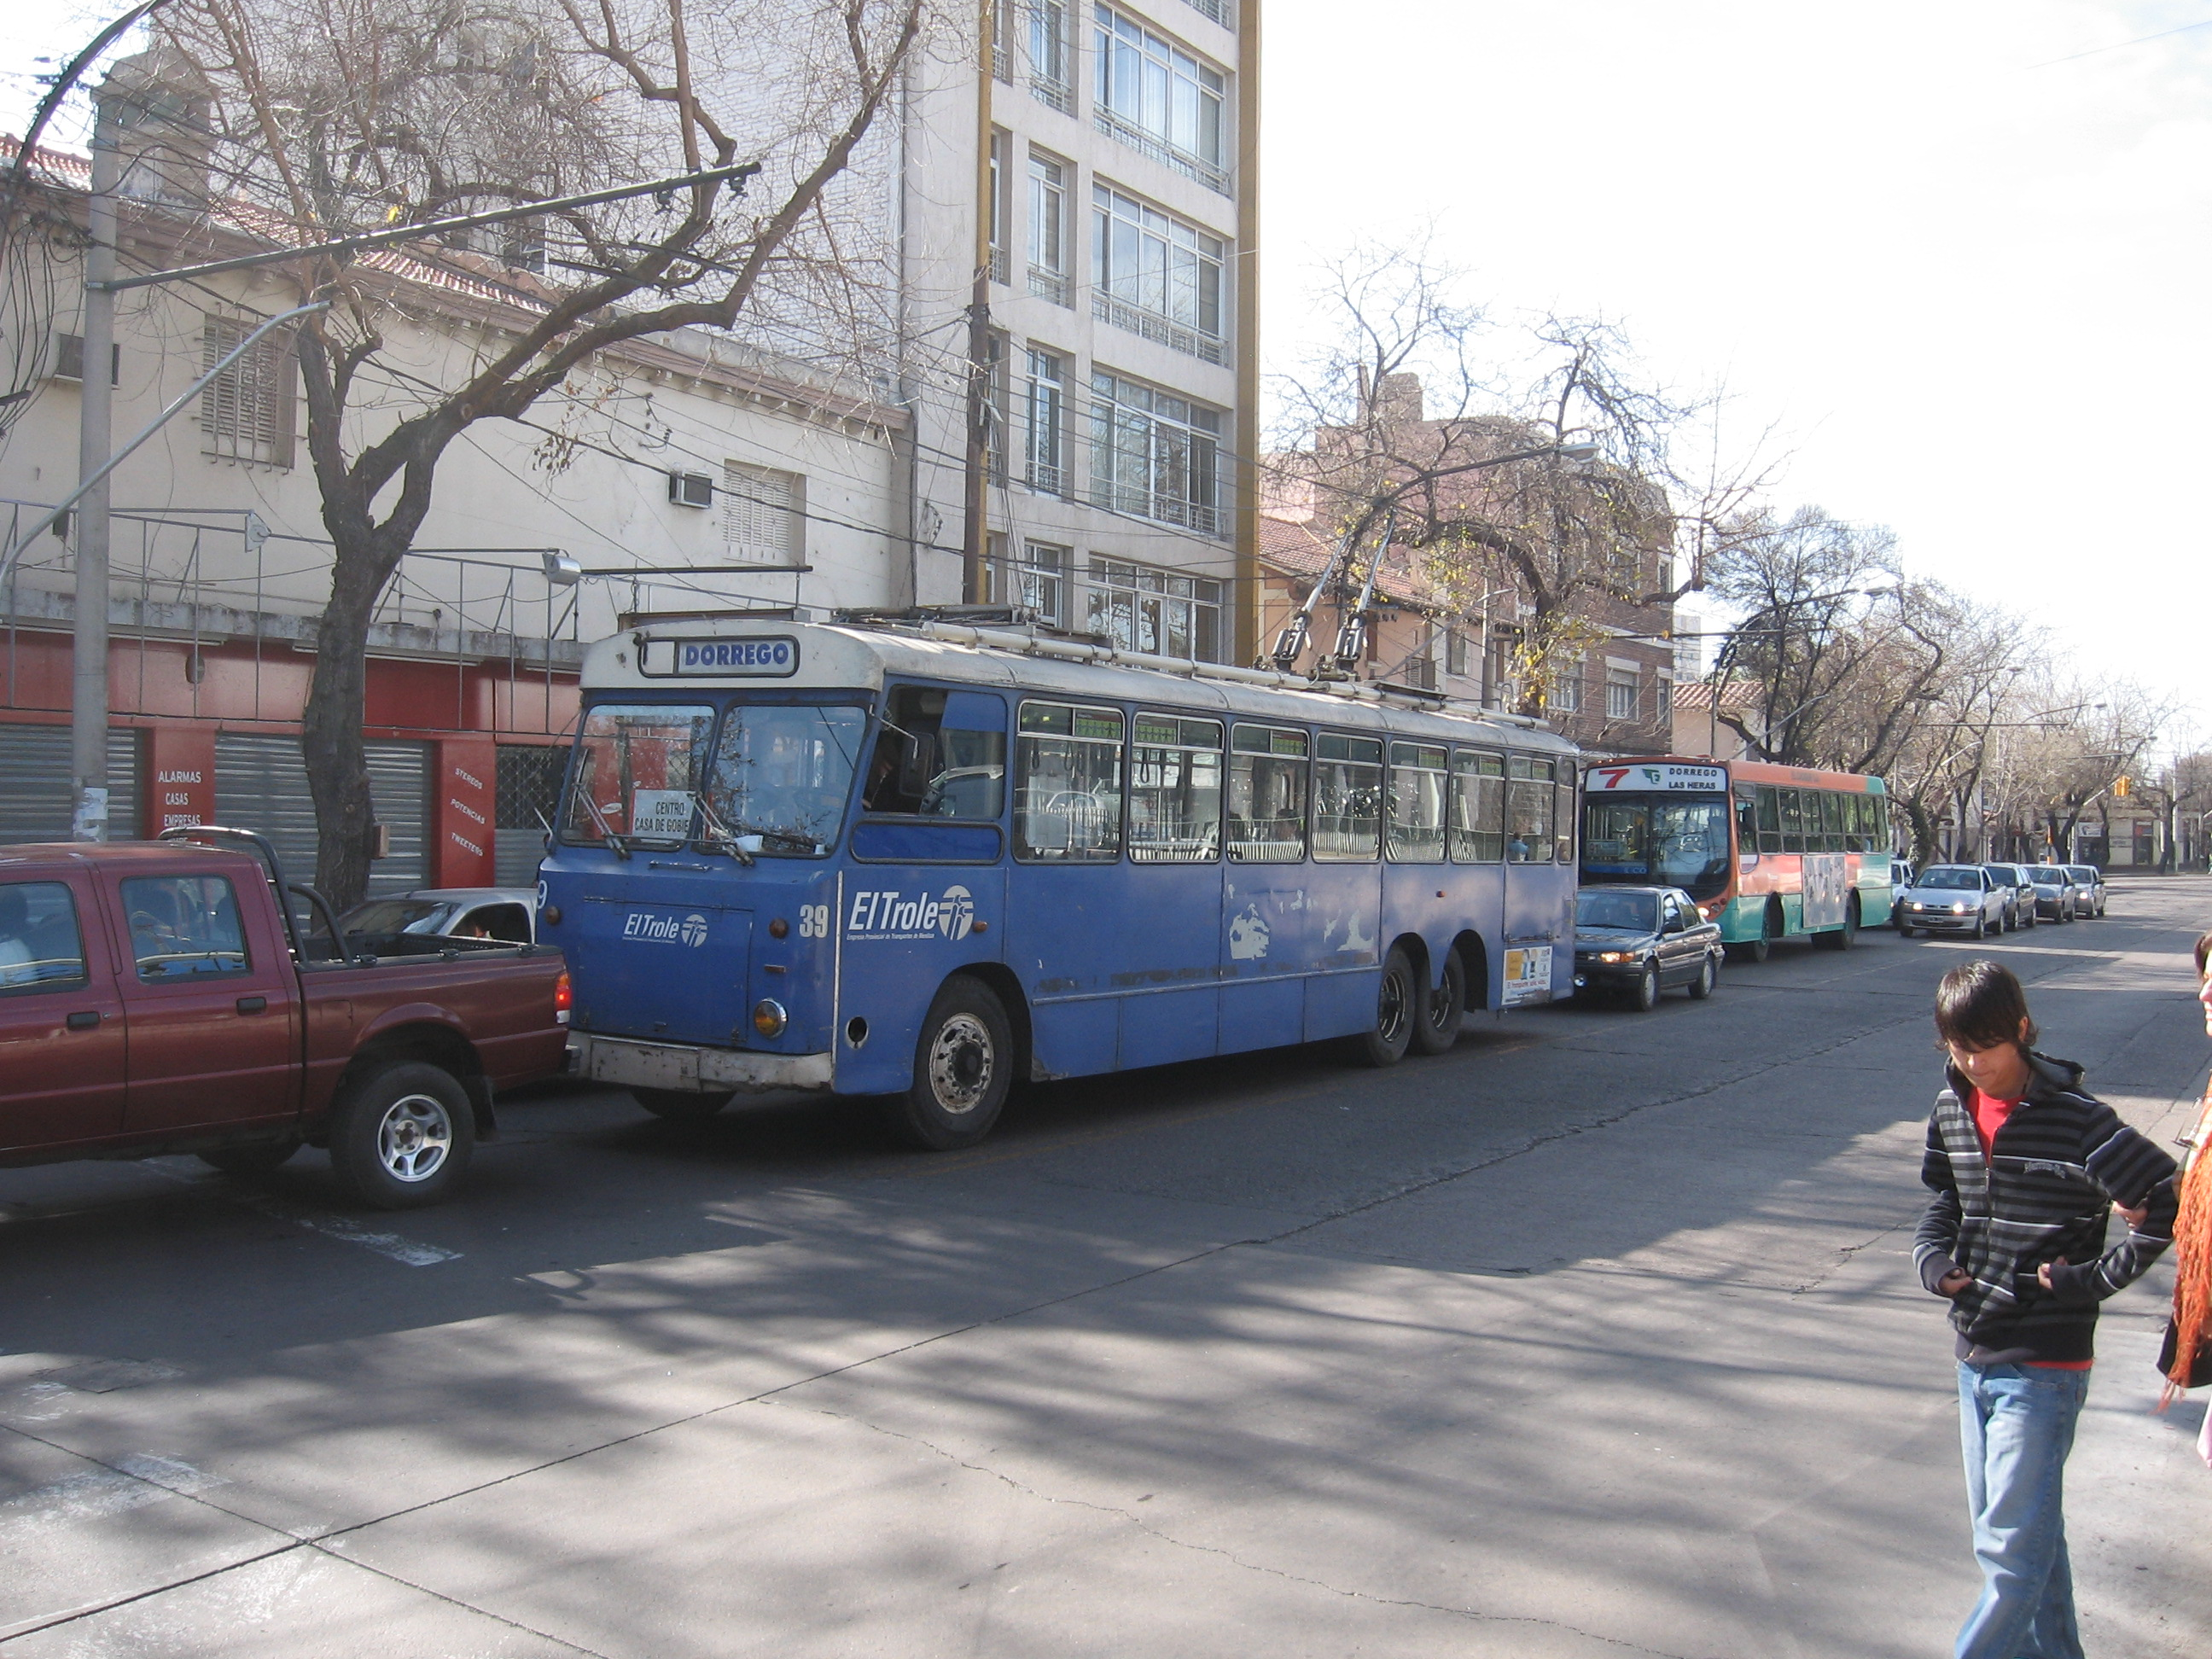 Trolleybus in the city of Mendoza. Operating since 1957, they were put up at a time when most cities around the world were dismantling theirs.